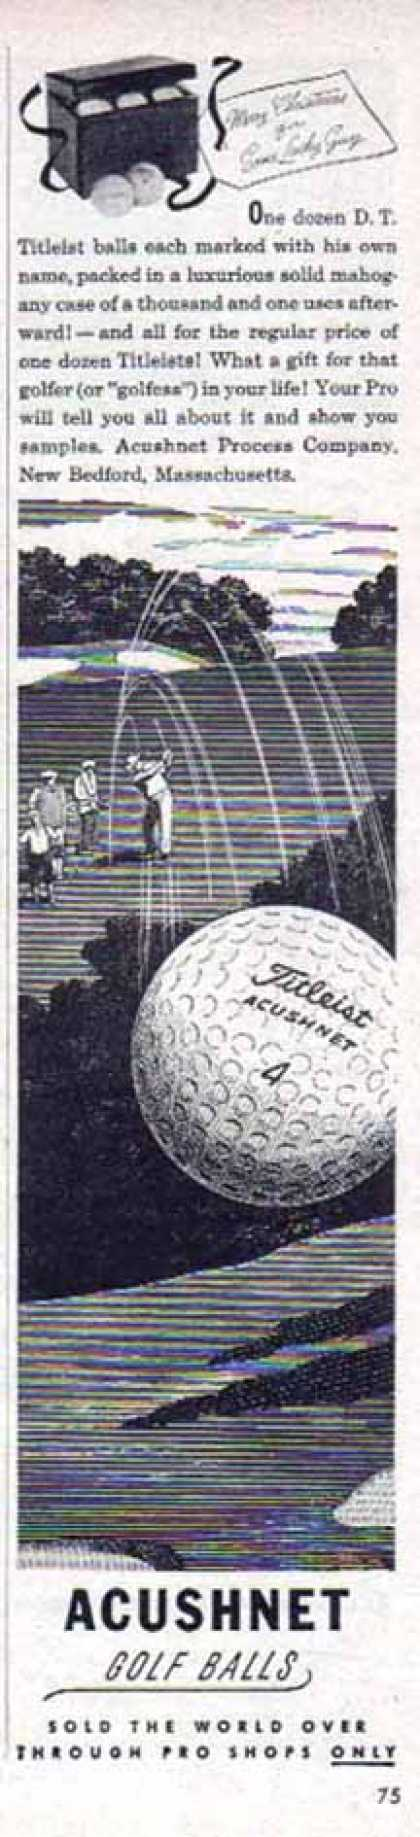 Titleist Acushnet Golf Ball – New Bedford, Massachusetts (1949)